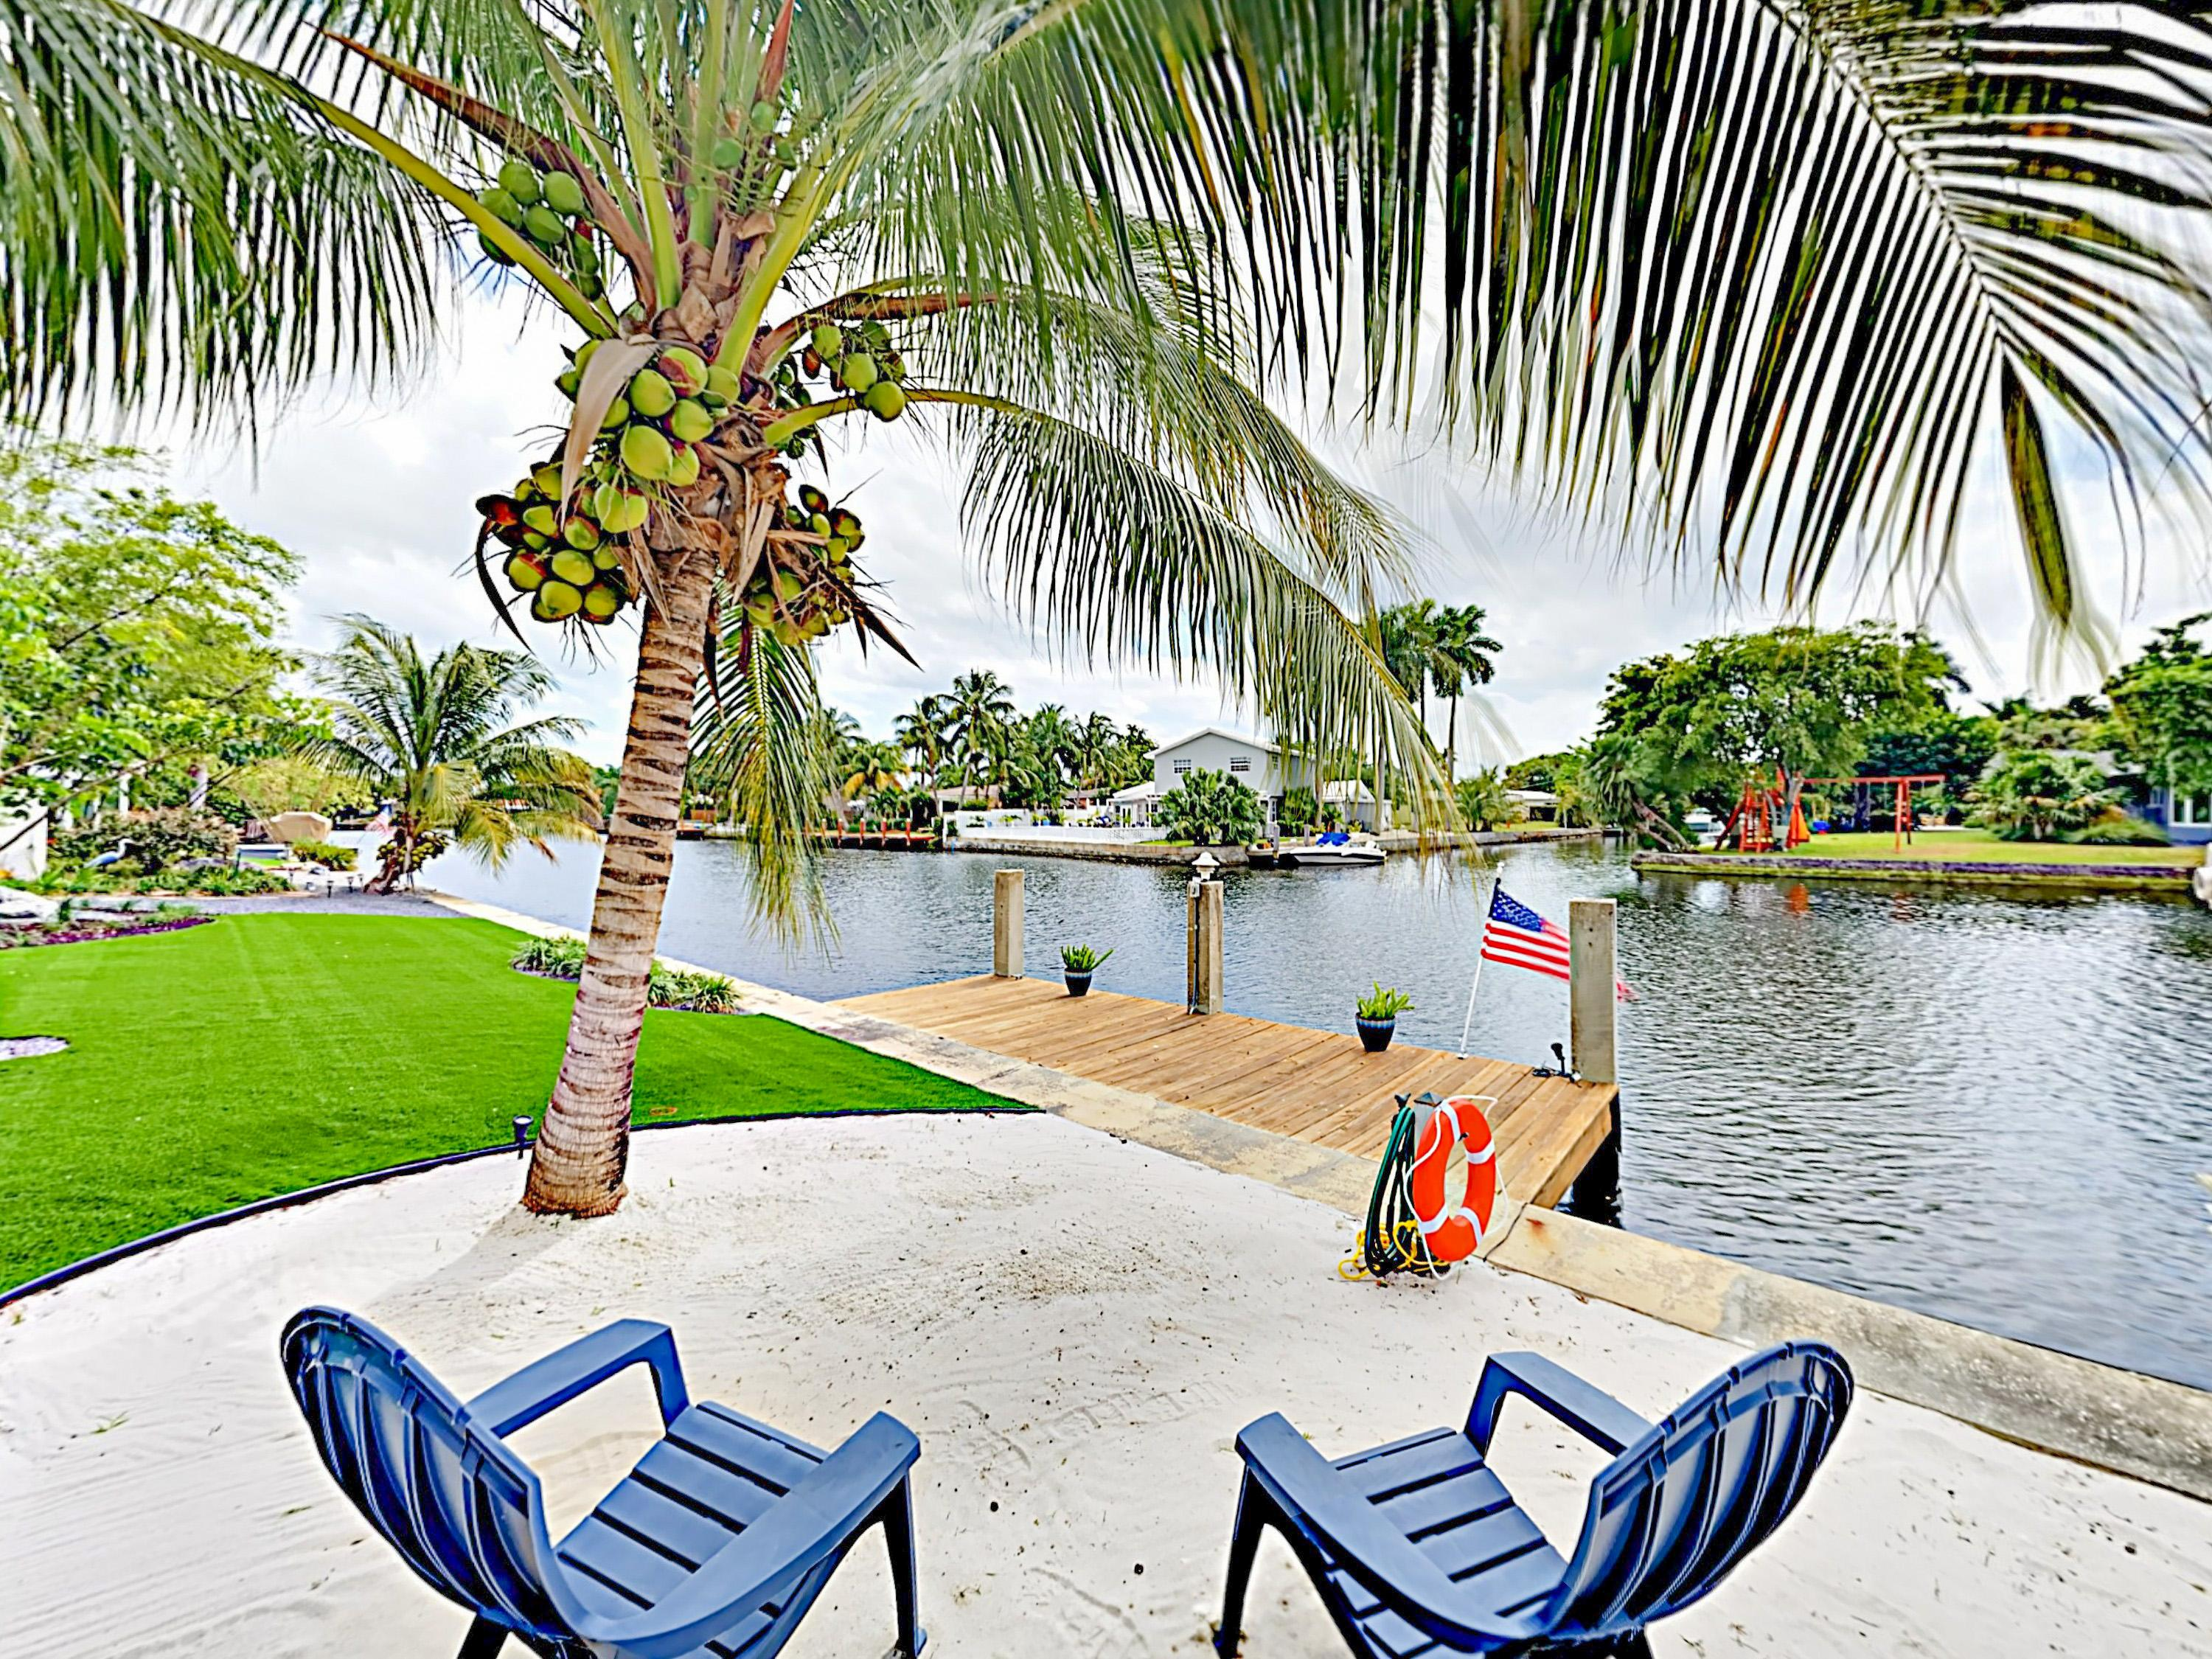 Enjoy the ambience of your own raised beach area beside the canal.